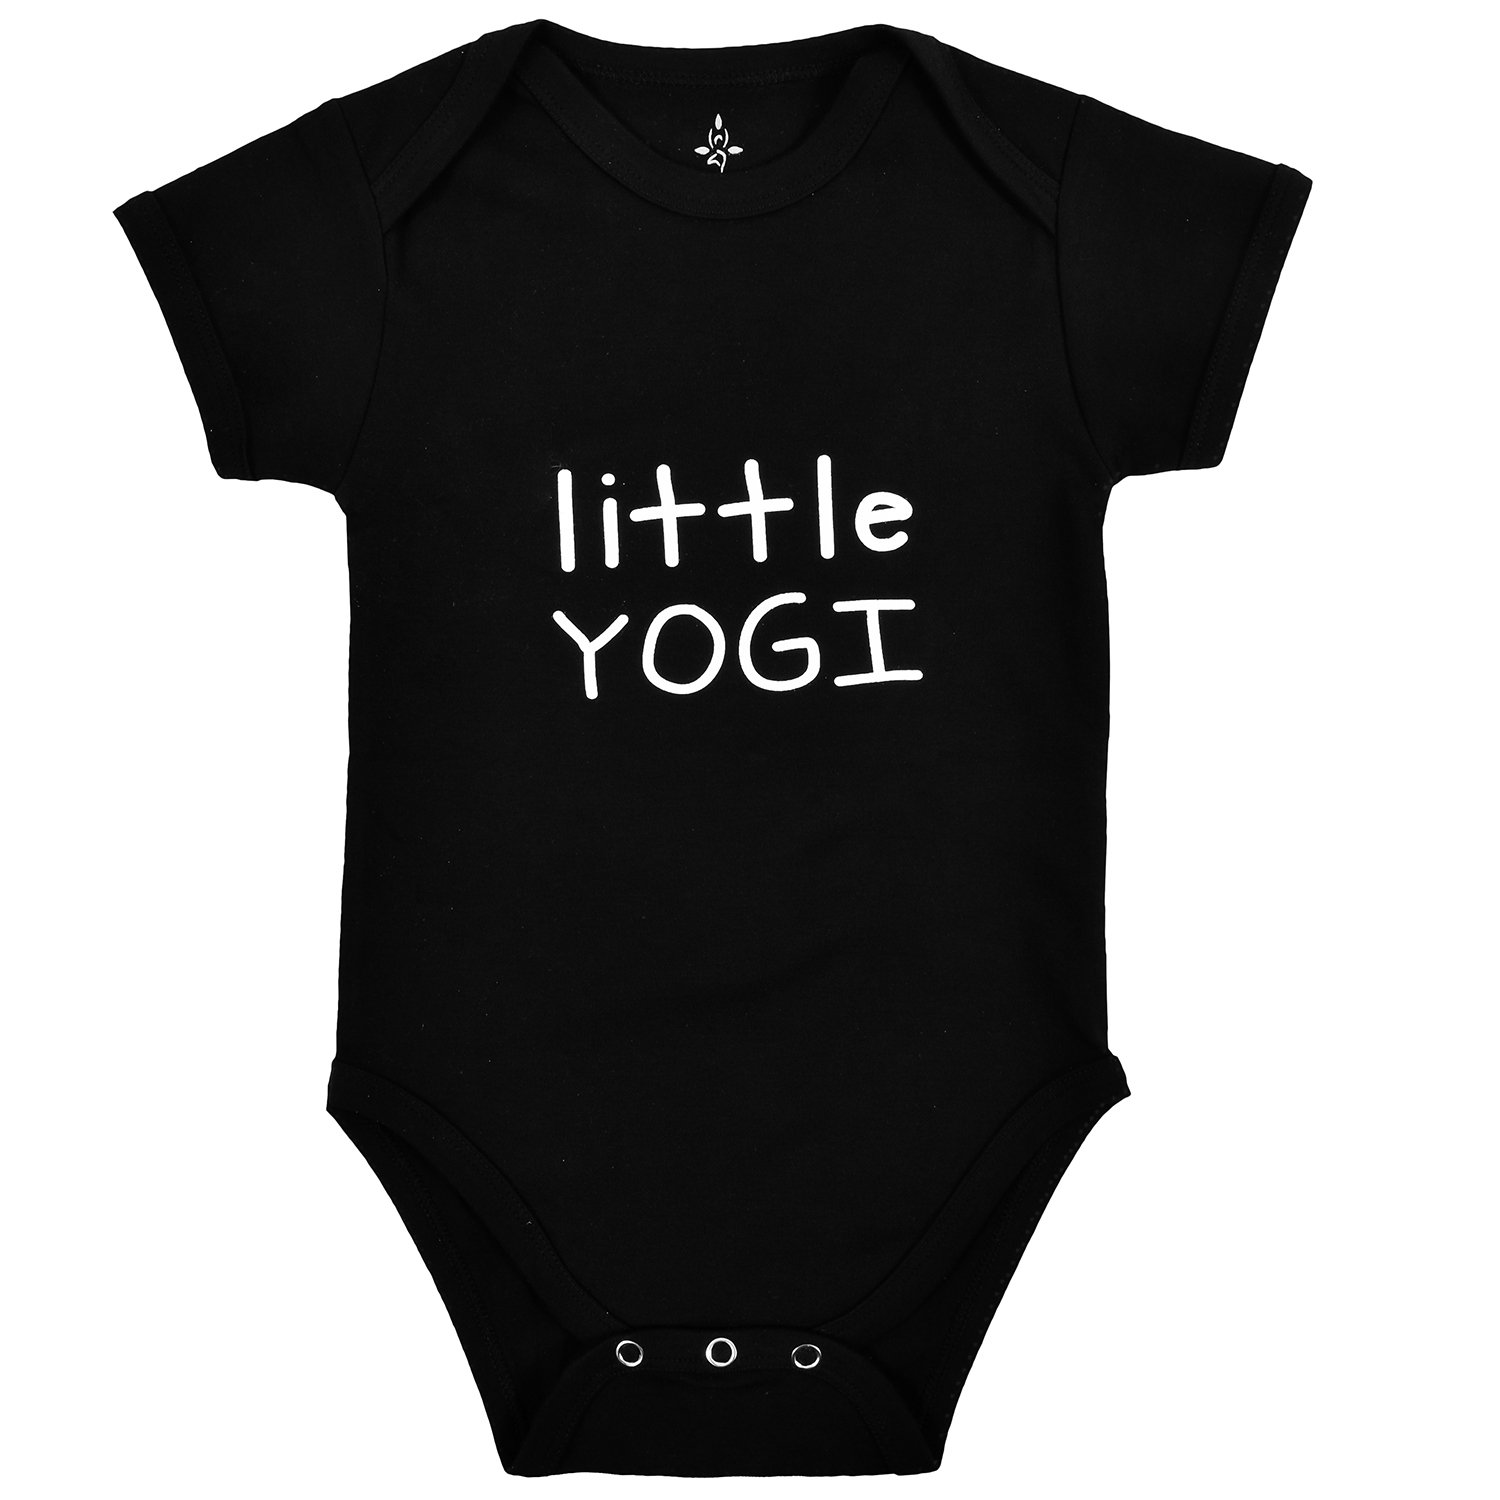 TREELANCE Yoga Onesie Baby. Organic Cotton Black Yoga Baby Clothes. Yoga Onesie for Babies. Organic Baby Shower Yoga Gift. Little Yogi 12 Months.